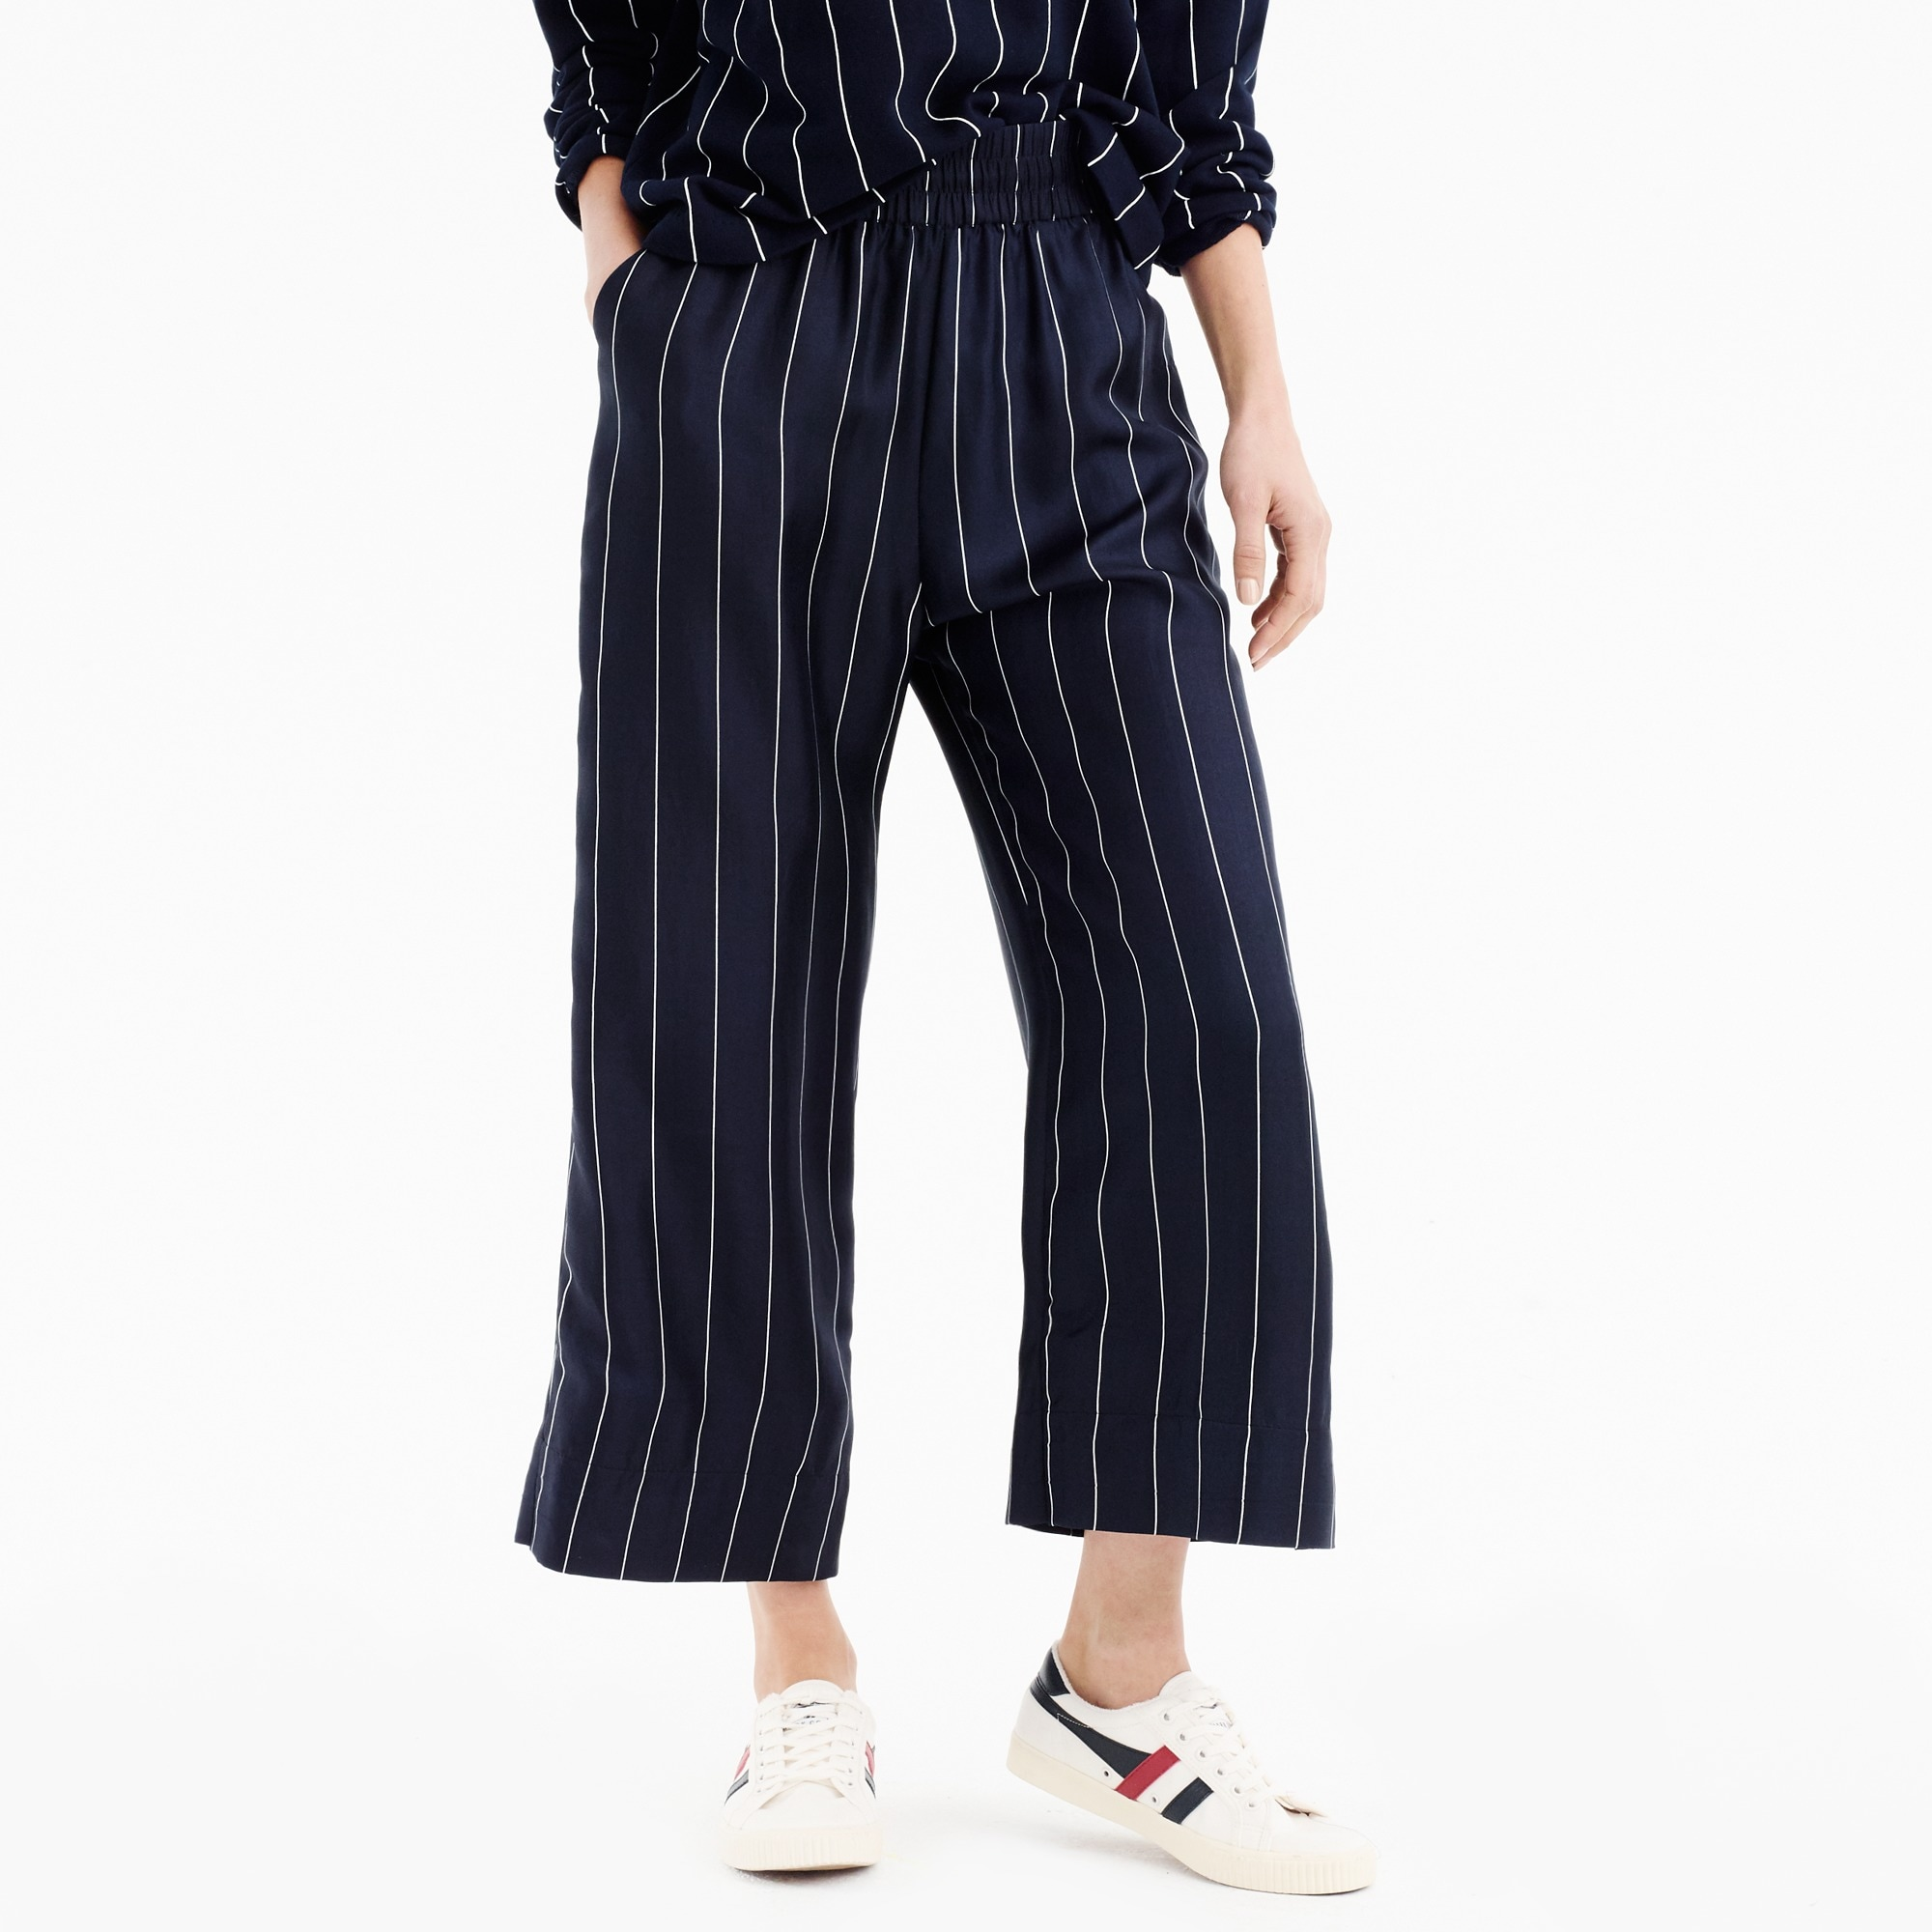 Image 5 for Cropped silk pull-on pant in pinstripe